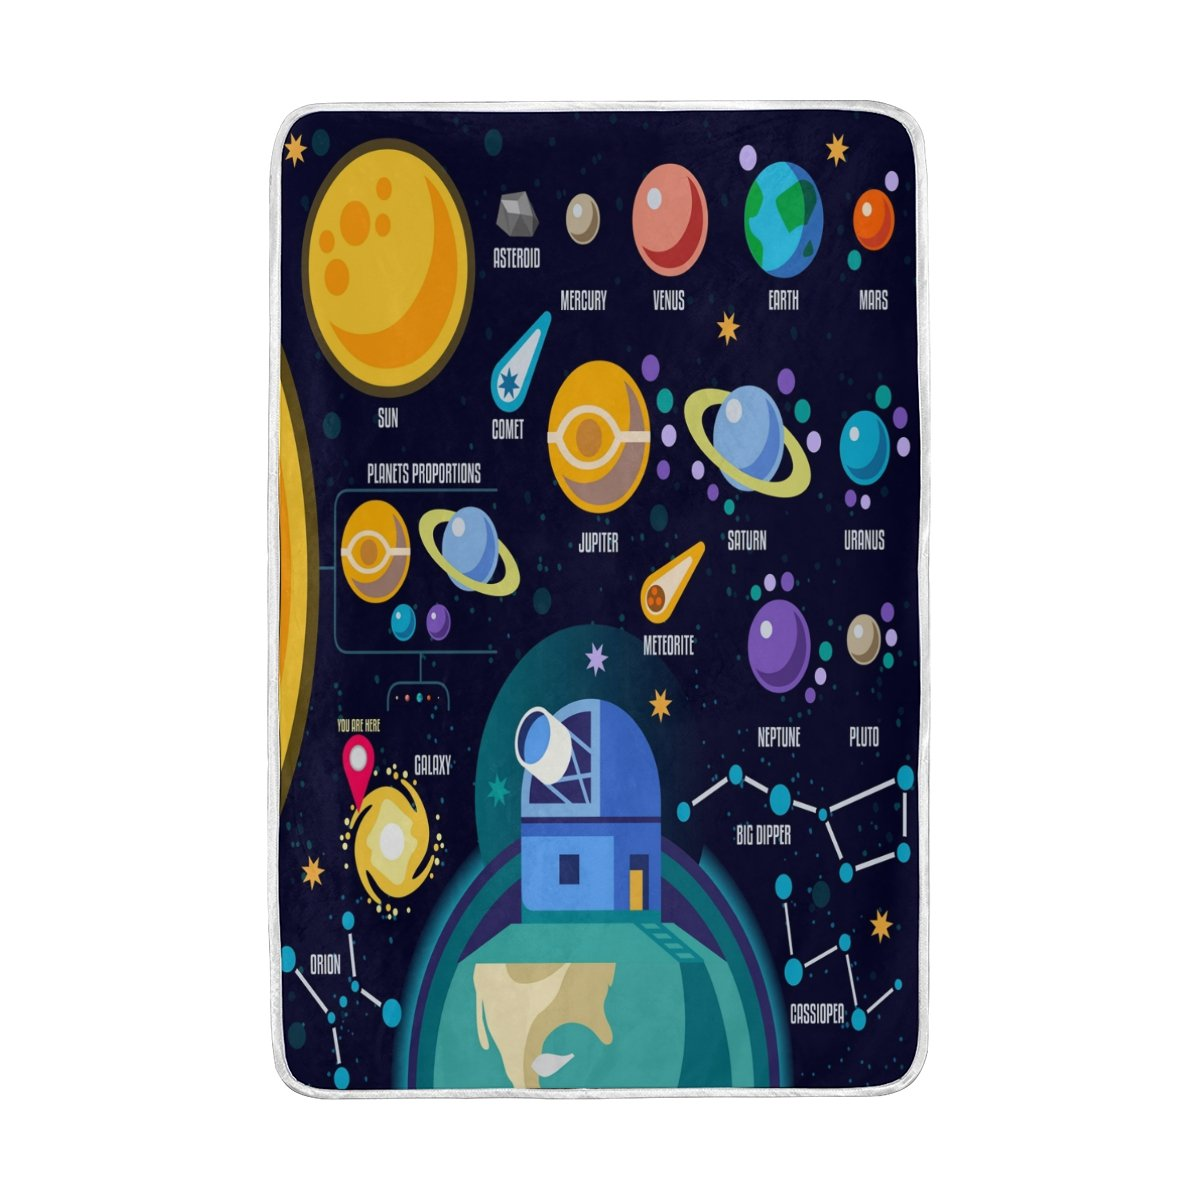 ALAZA Home Decor Space 3D Galaxy Solar System Soft Warm Blanket for Bed Couch Sofa Lightweight Travelling Camping 90 x 60 Inch Twin Size for Kids Boys Women